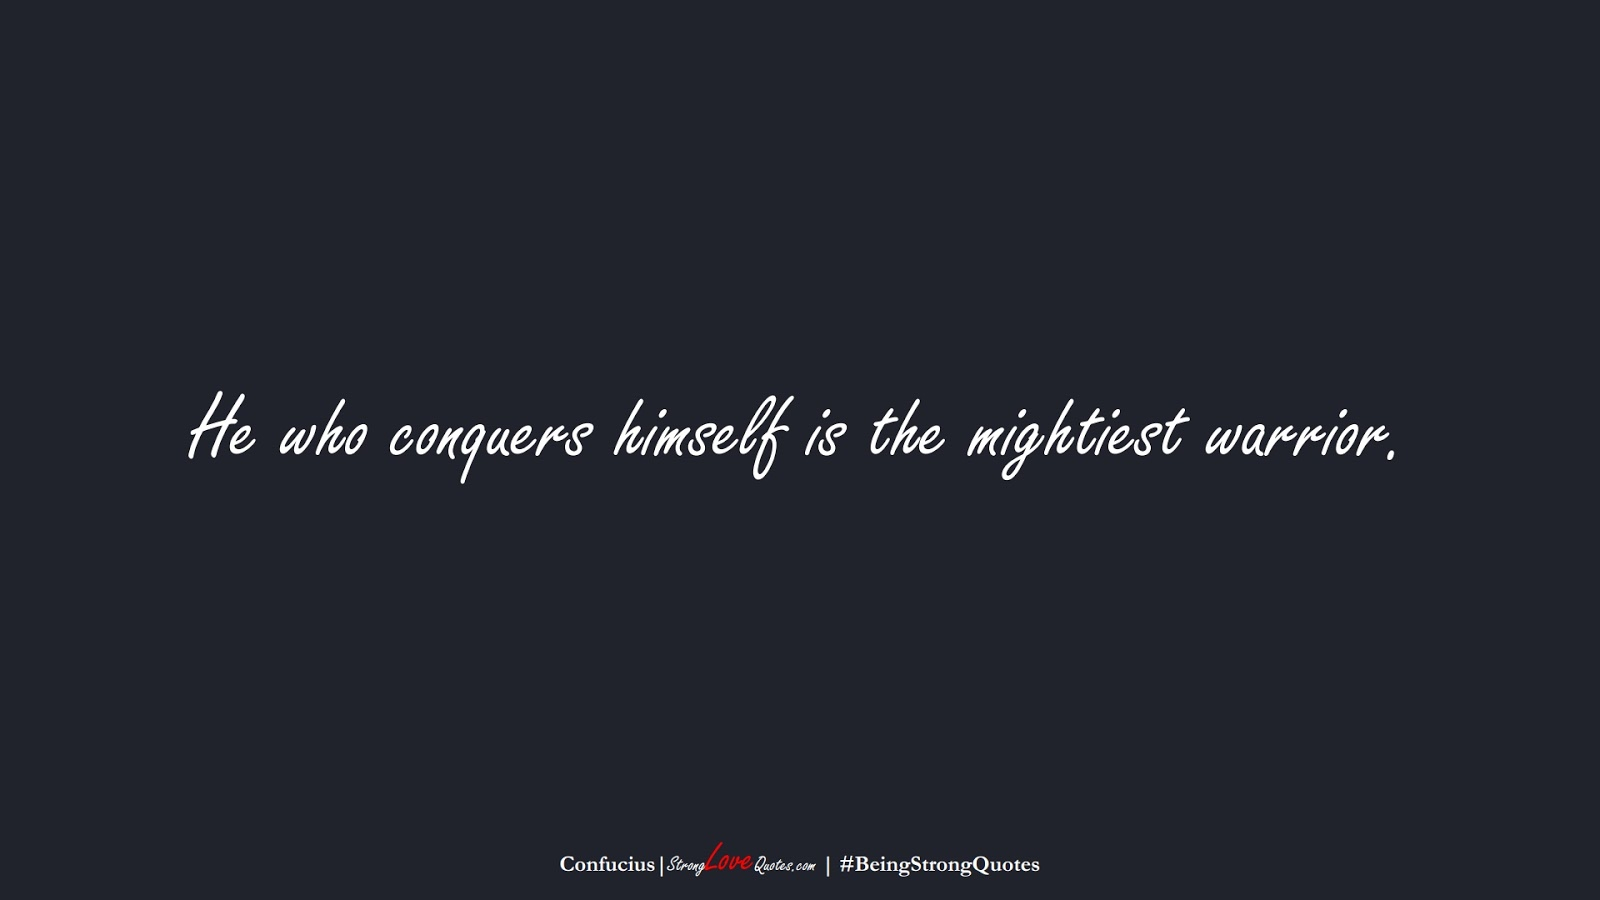 He who conquers himself is the mightiest warrior. (Confucius);  #BeingStrongQuotes